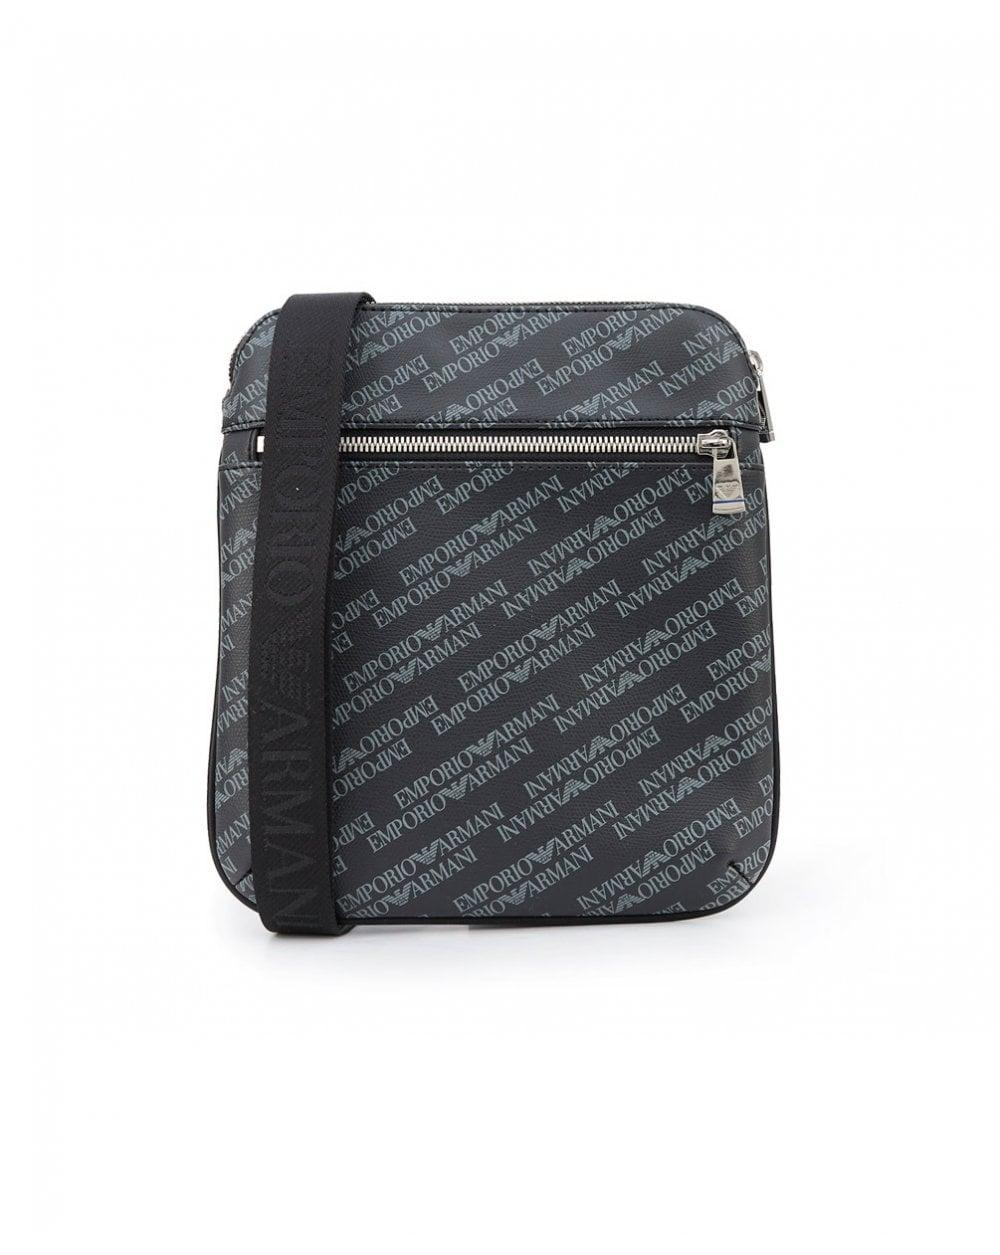 Lyst - Armani Jeans All Over Logo Leather Stash Bag in Black for Men 3355457b3feaa